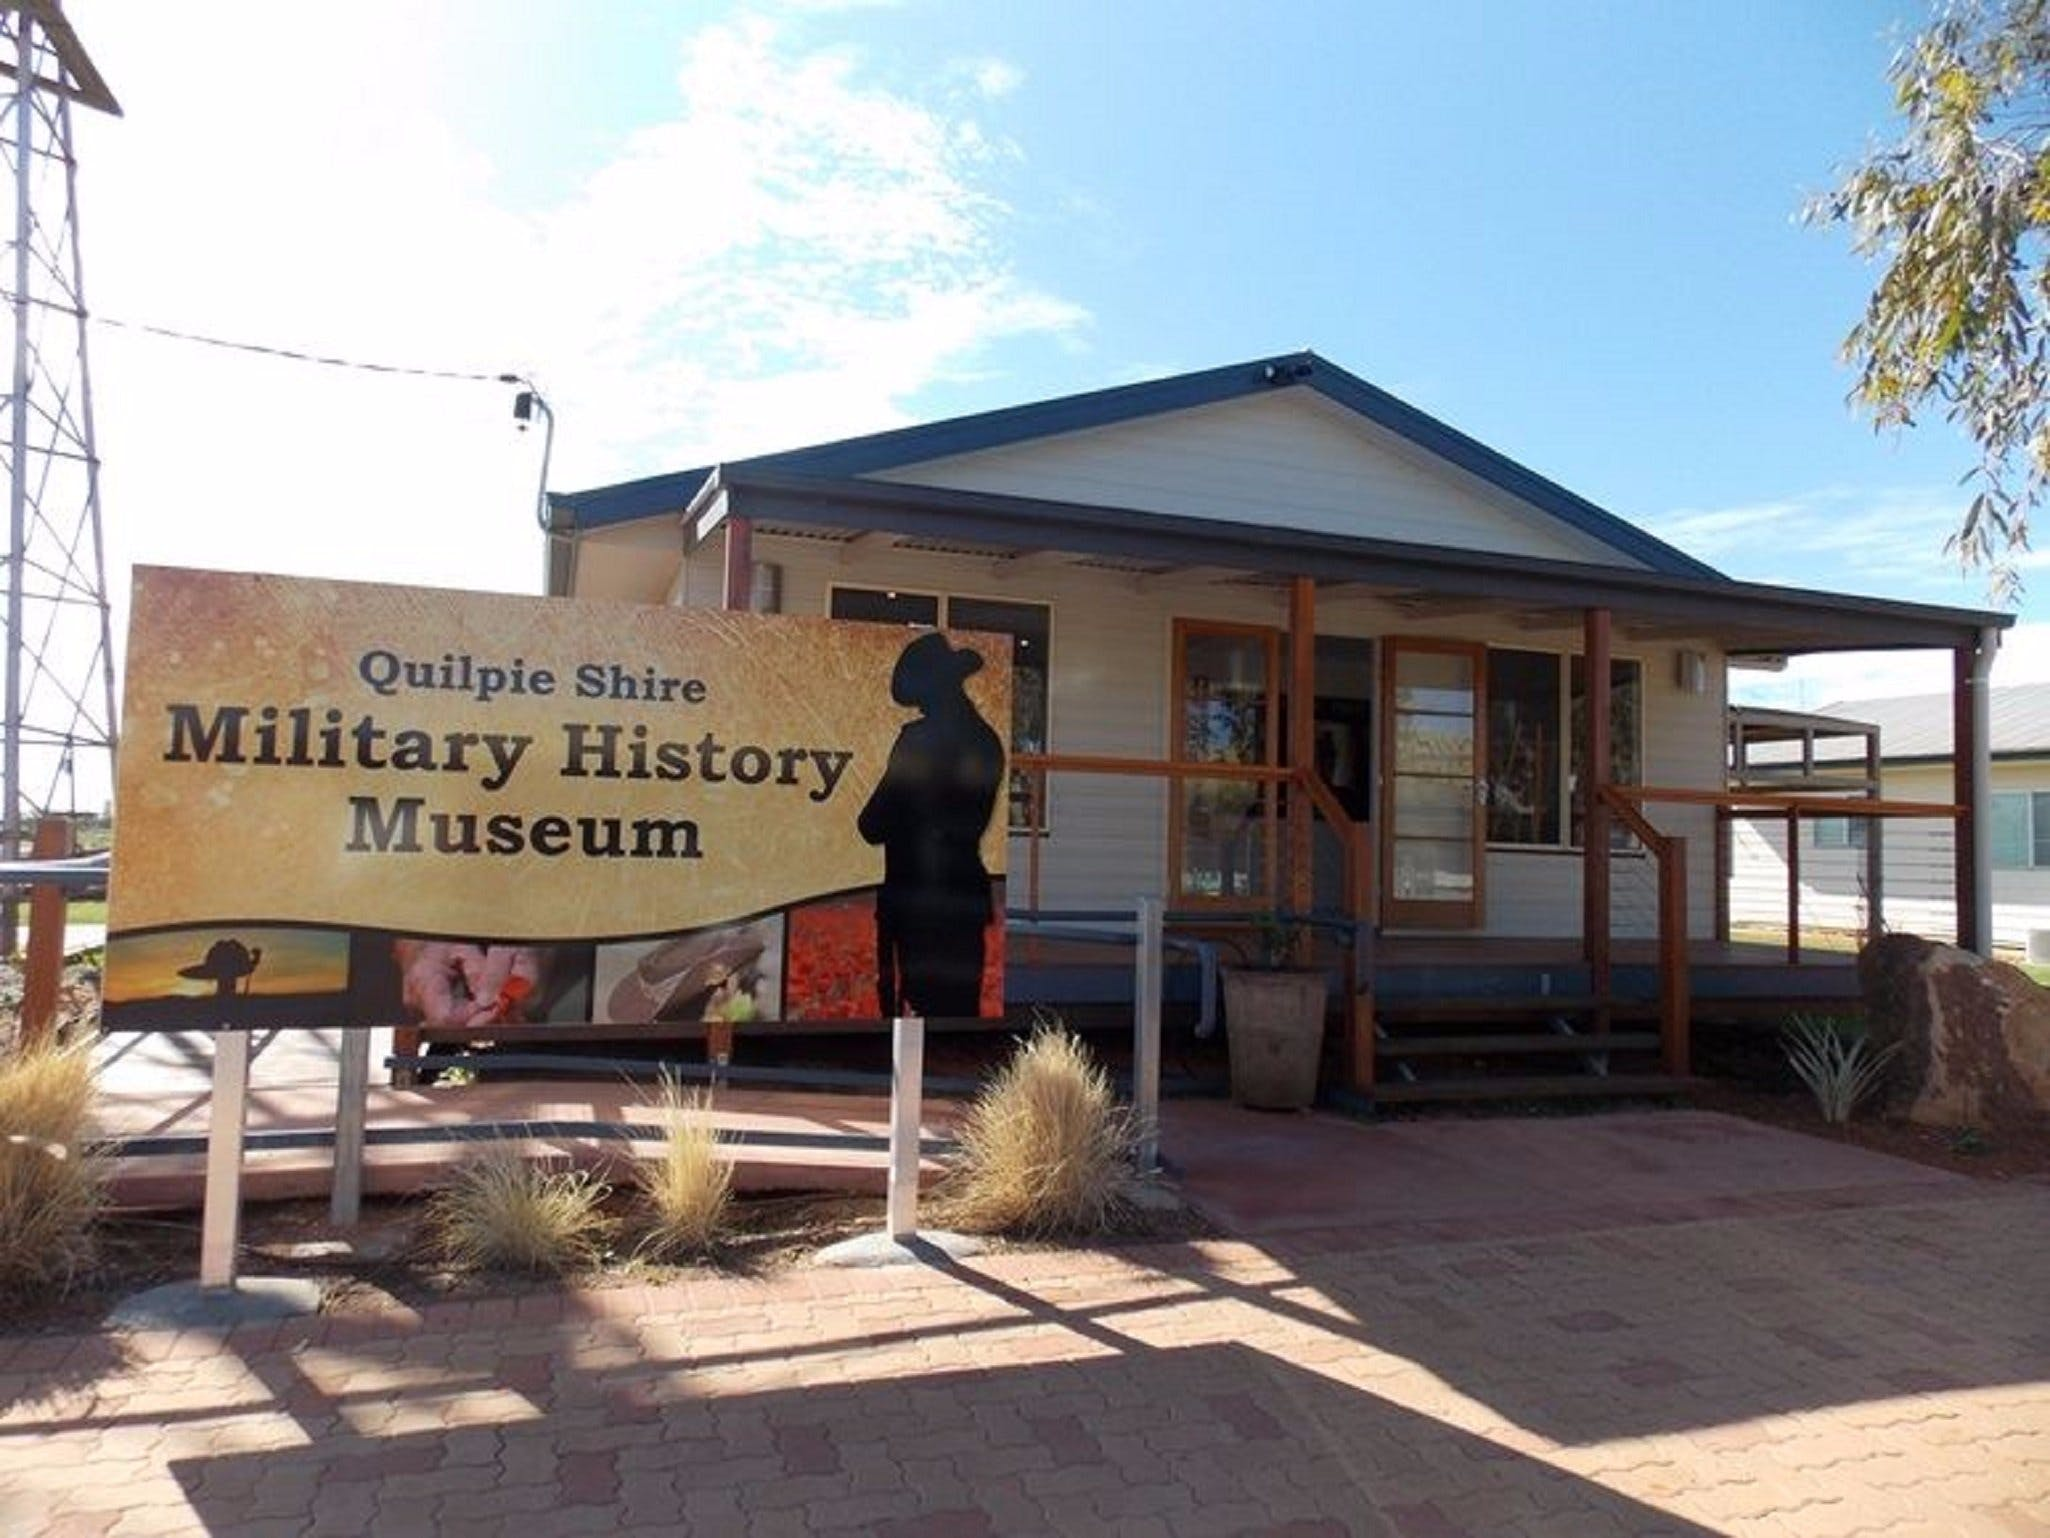 Quilpie Shire Military History Museum - Accommodation Broome